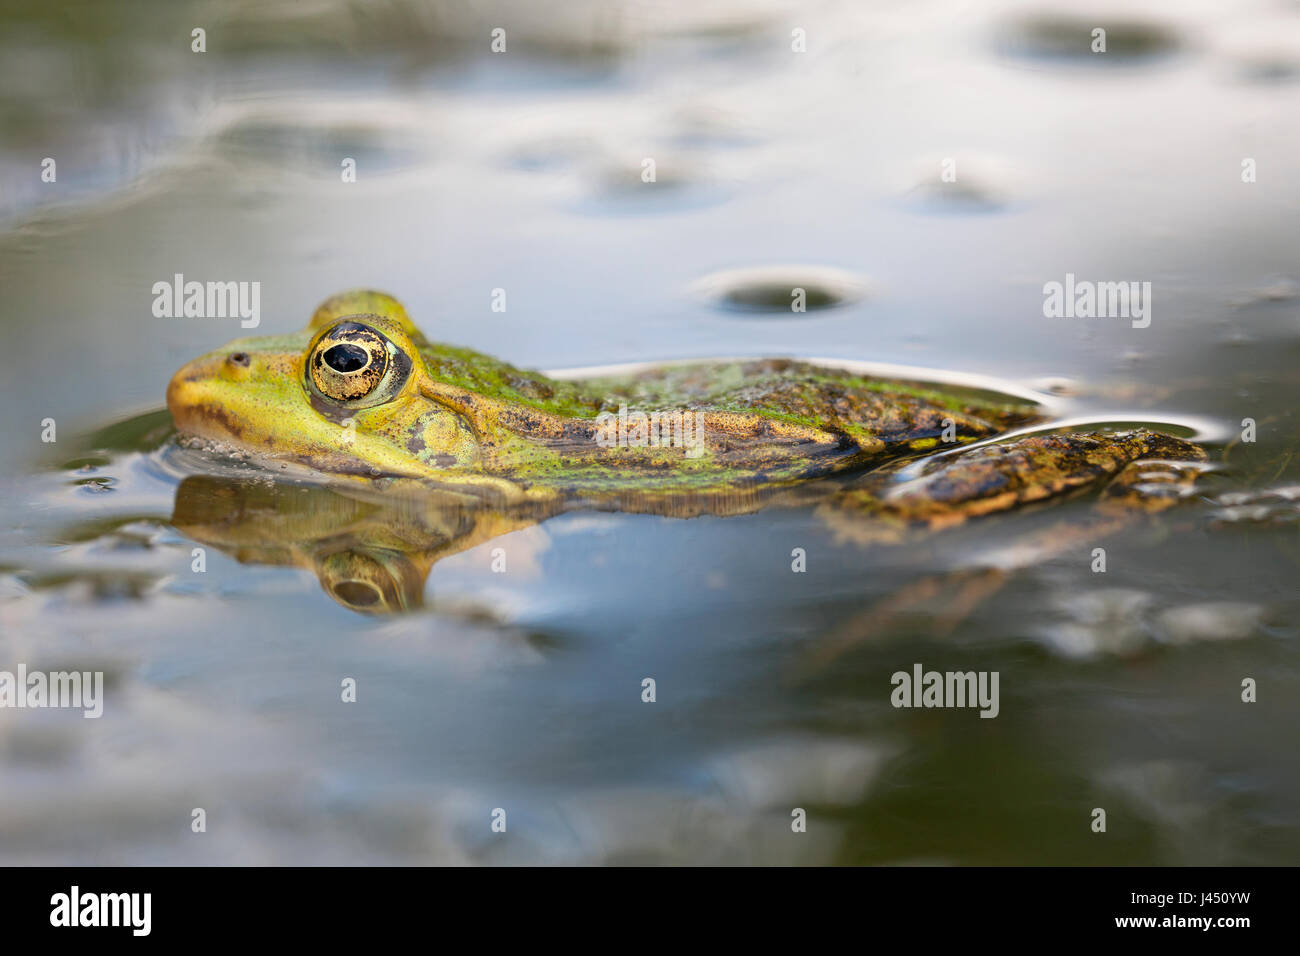 Edible frog in the water - Stock Image